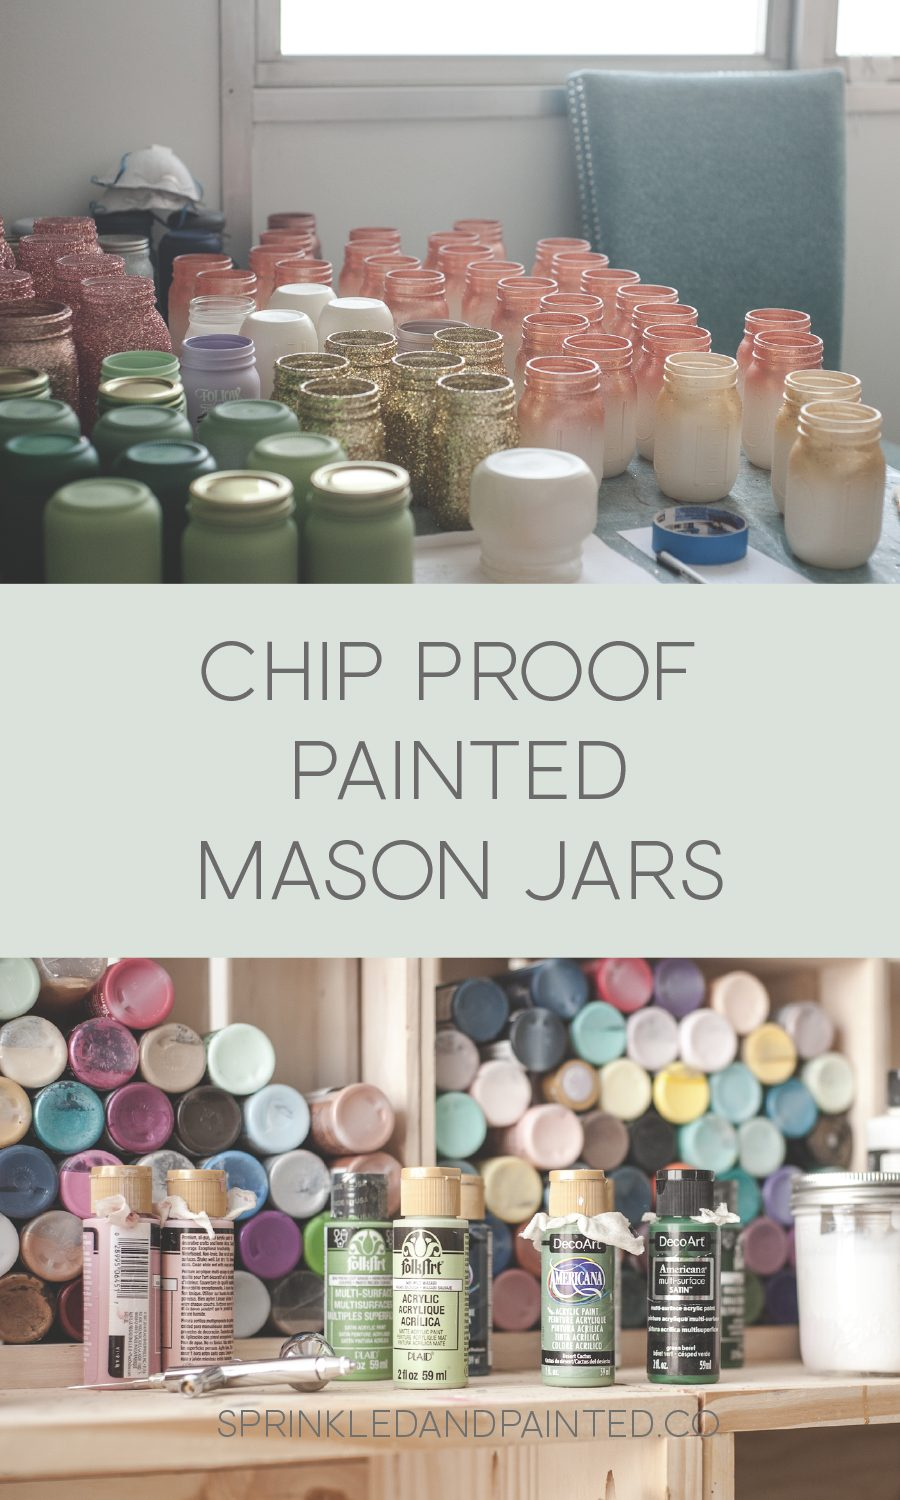 Chip proof painted mason jars.